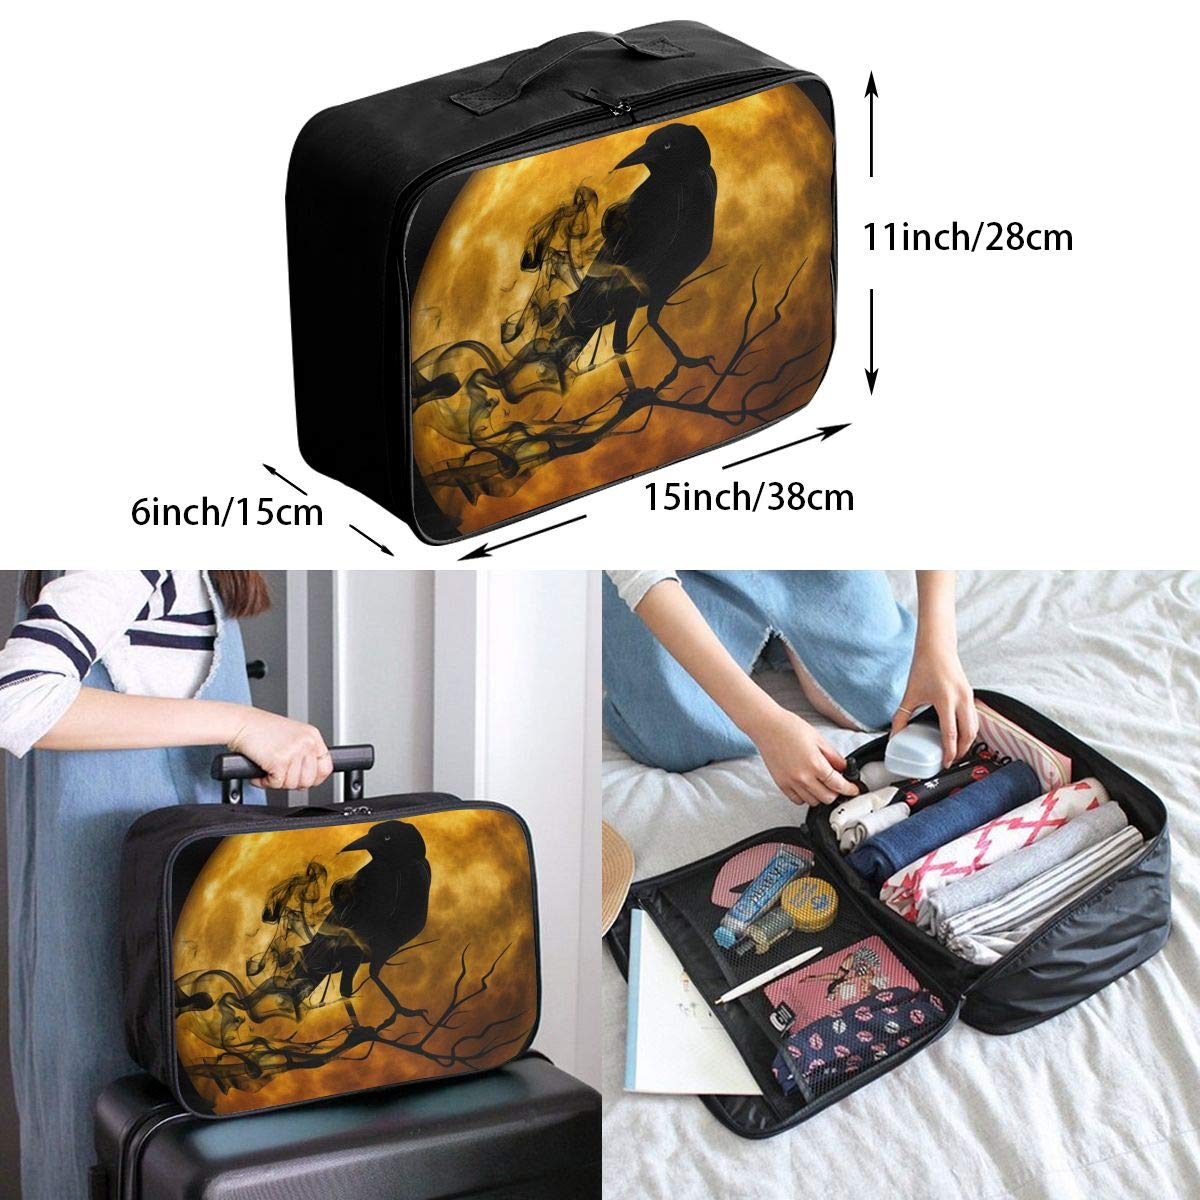 Travel Luggage Duffle Bag Lightweight Portable Handbag Moon Crow Large Capacity Waterproof Foldable Storage Tote